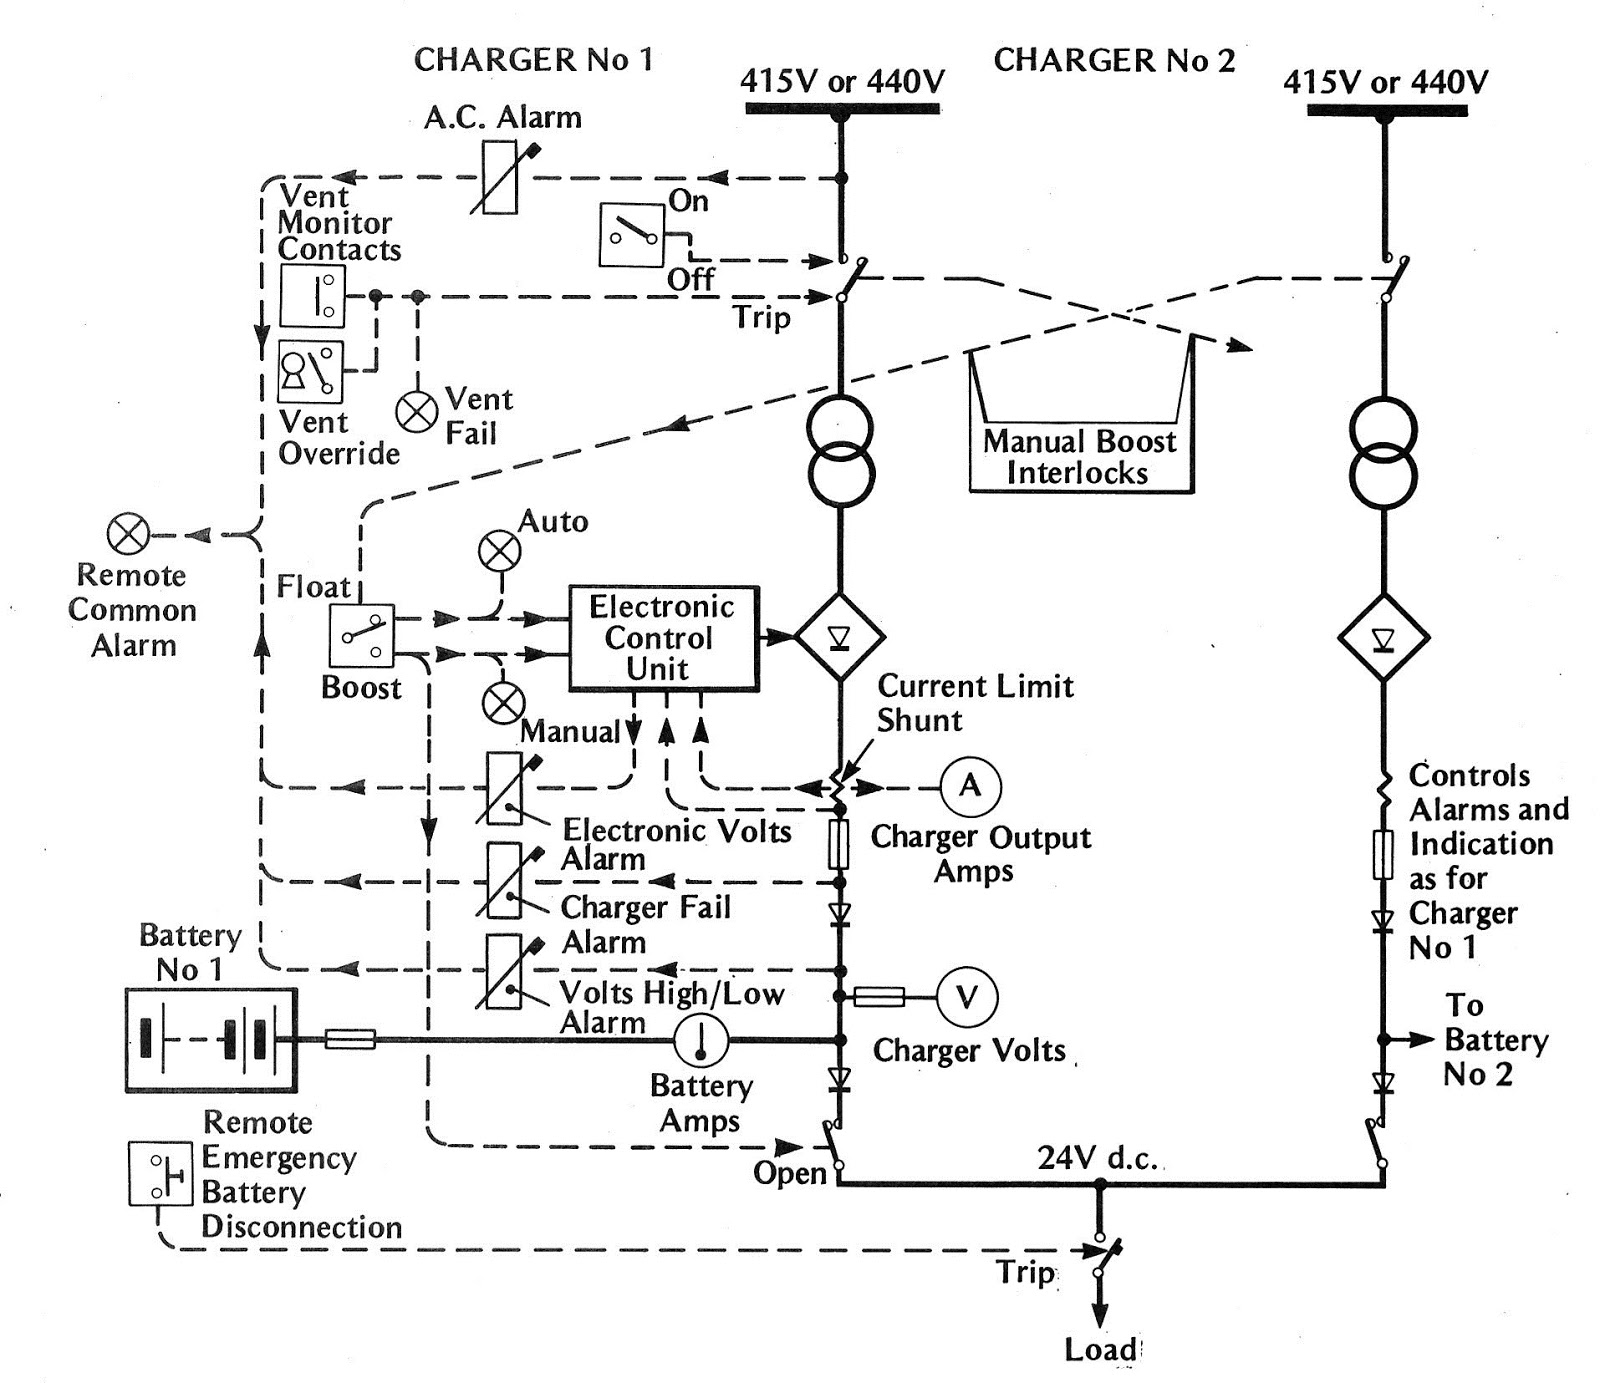 engineering photos videos and articels  engineering search engine   chapter 3 battery supported